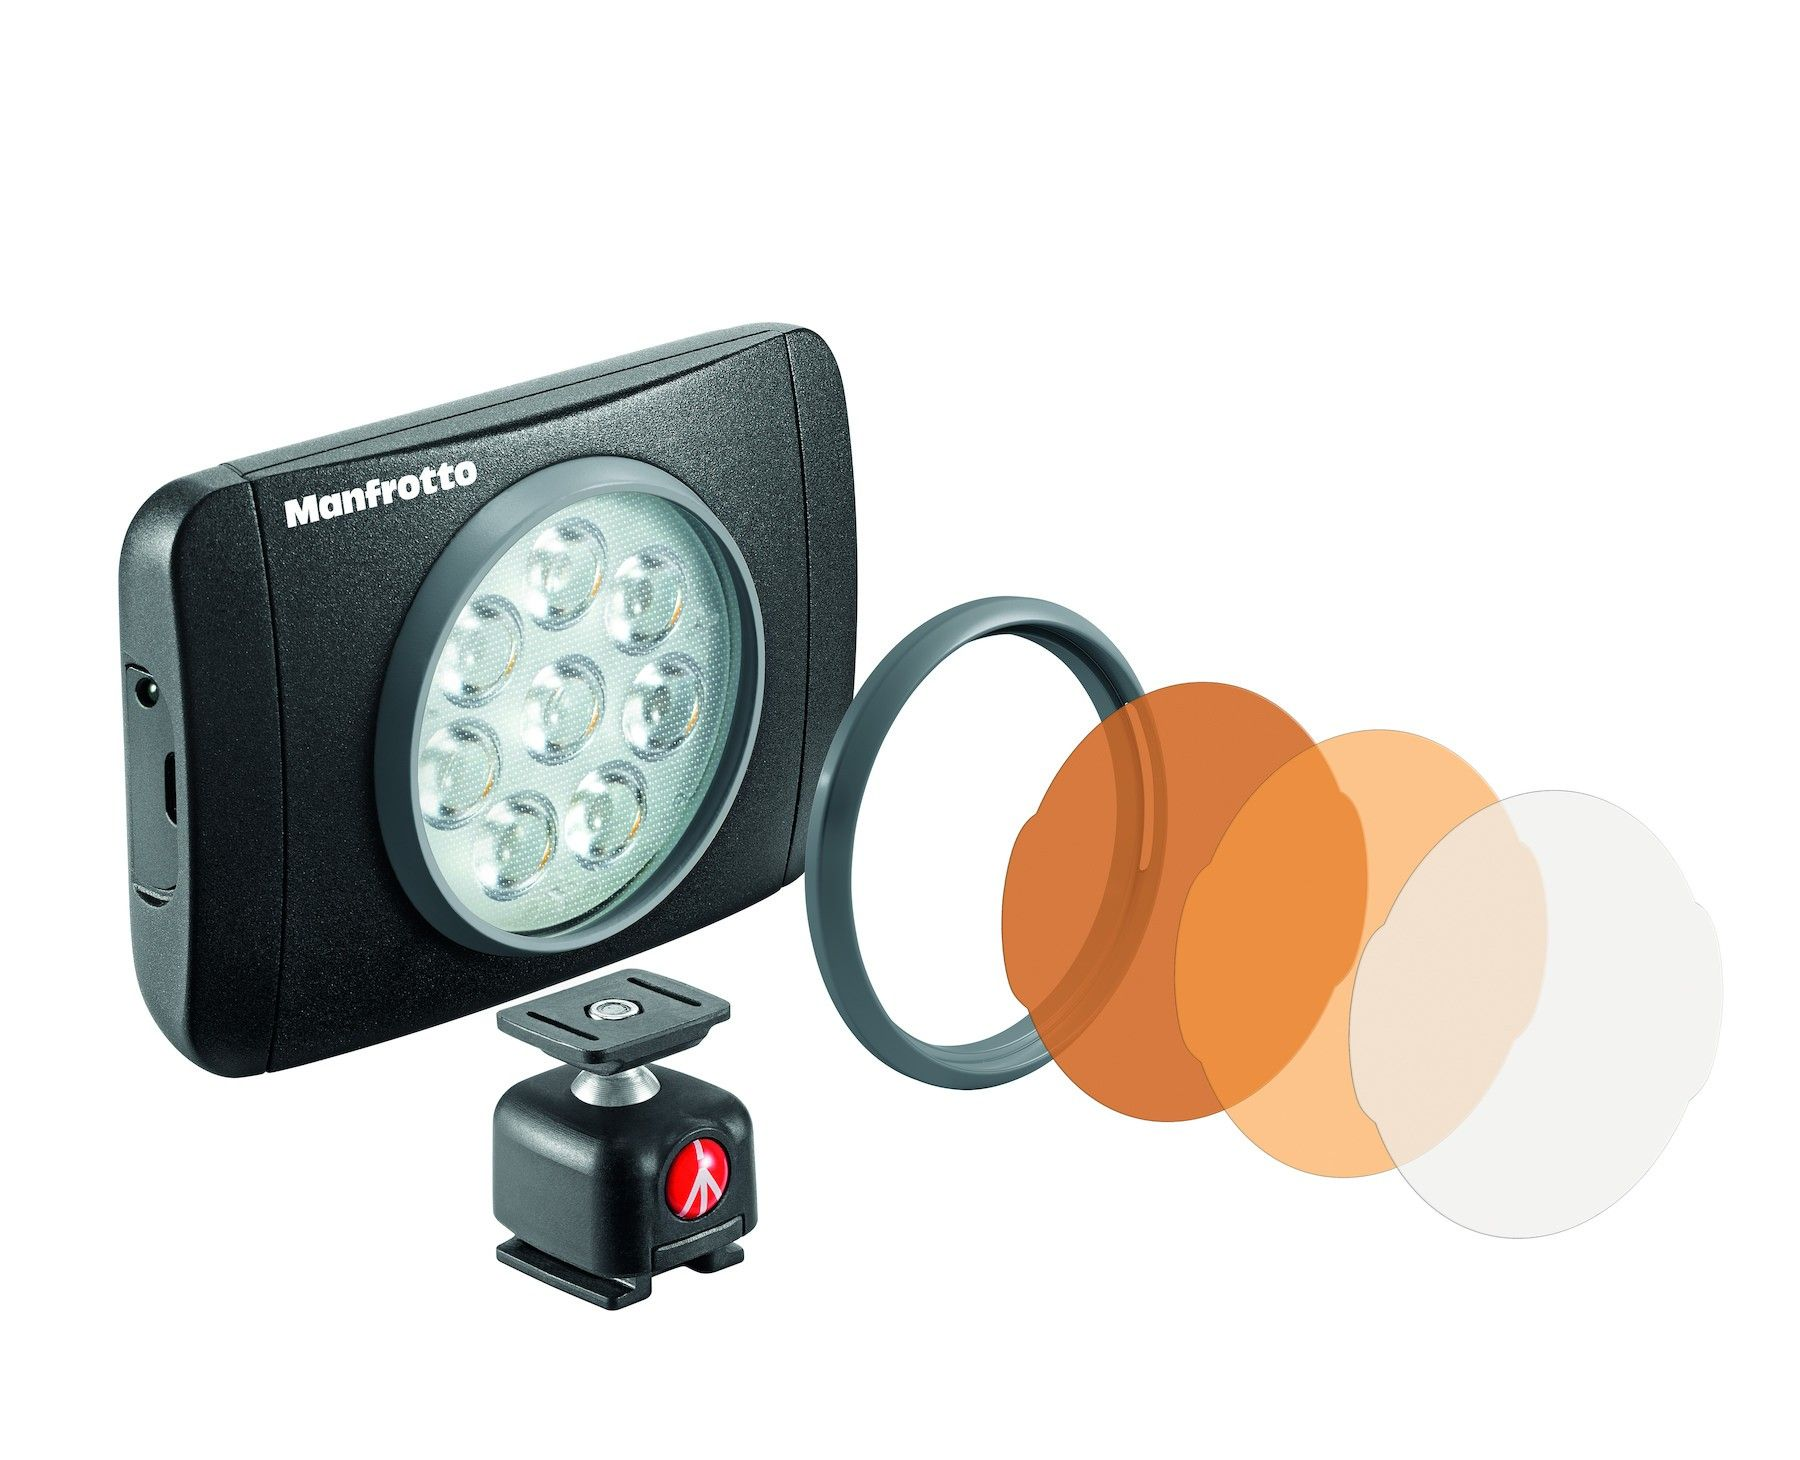 Manfrotto Lumimuse LED Light